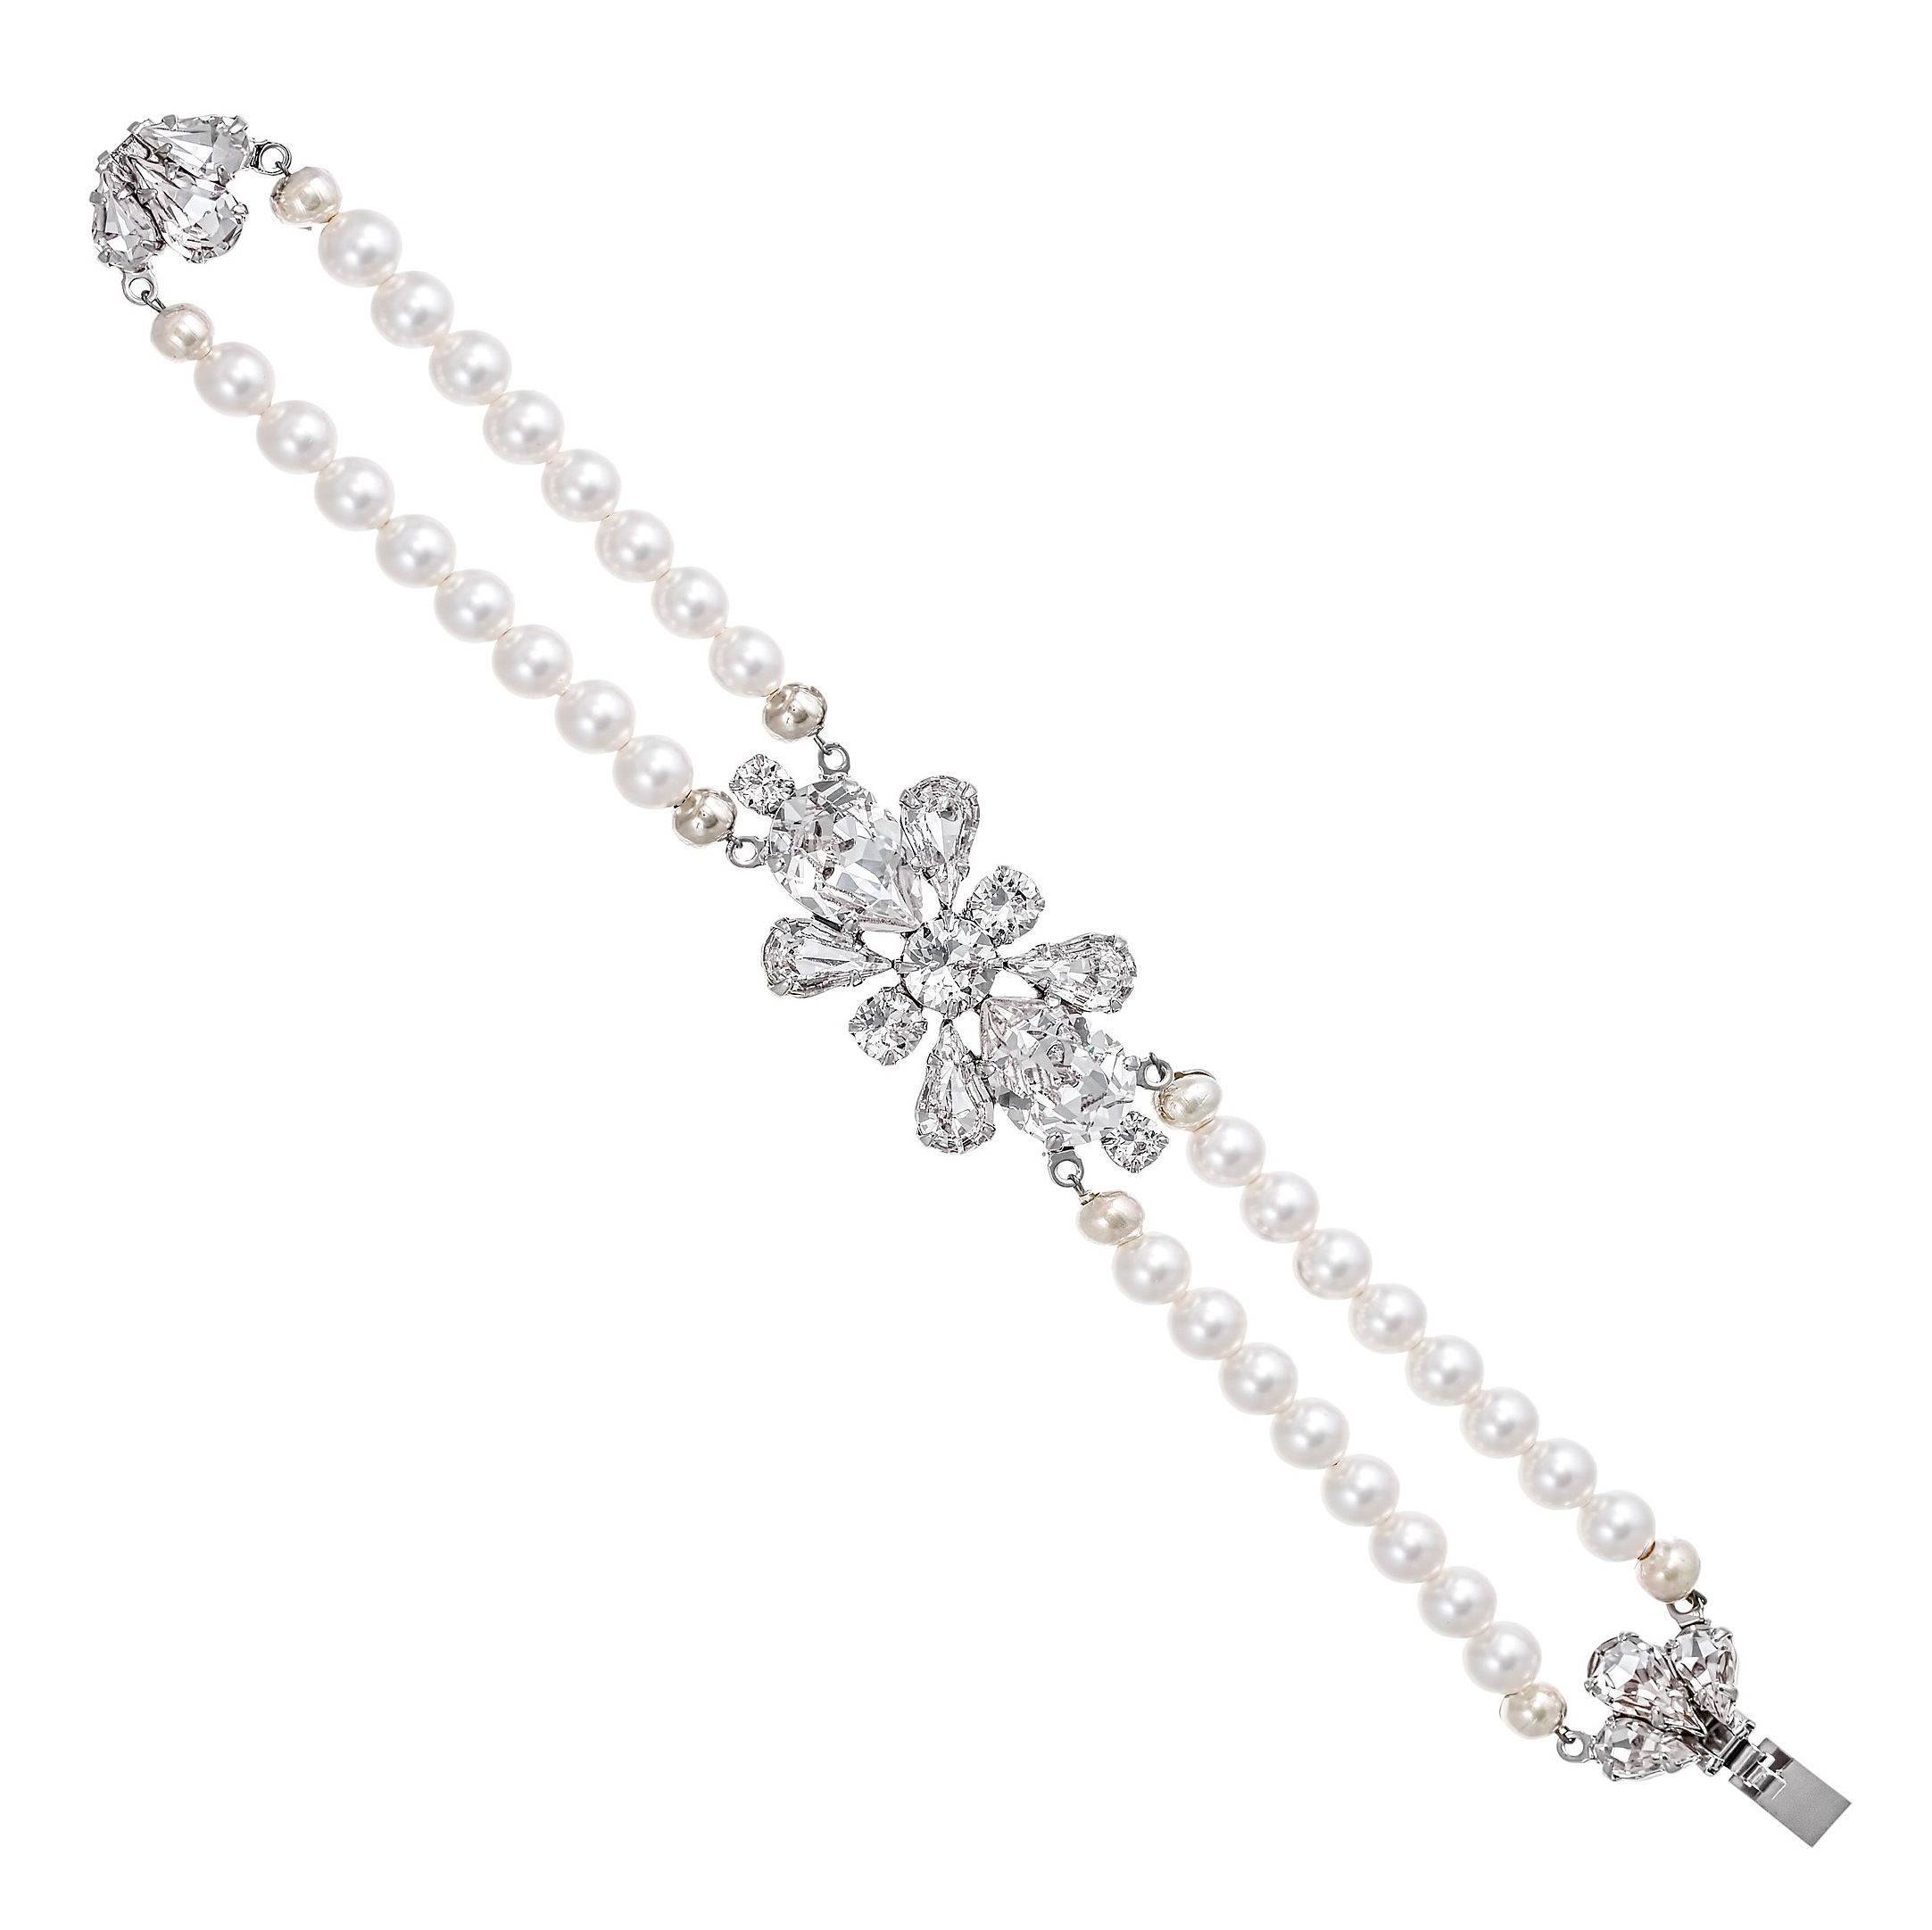 Katarina crystal and freshwater pearl bracelet